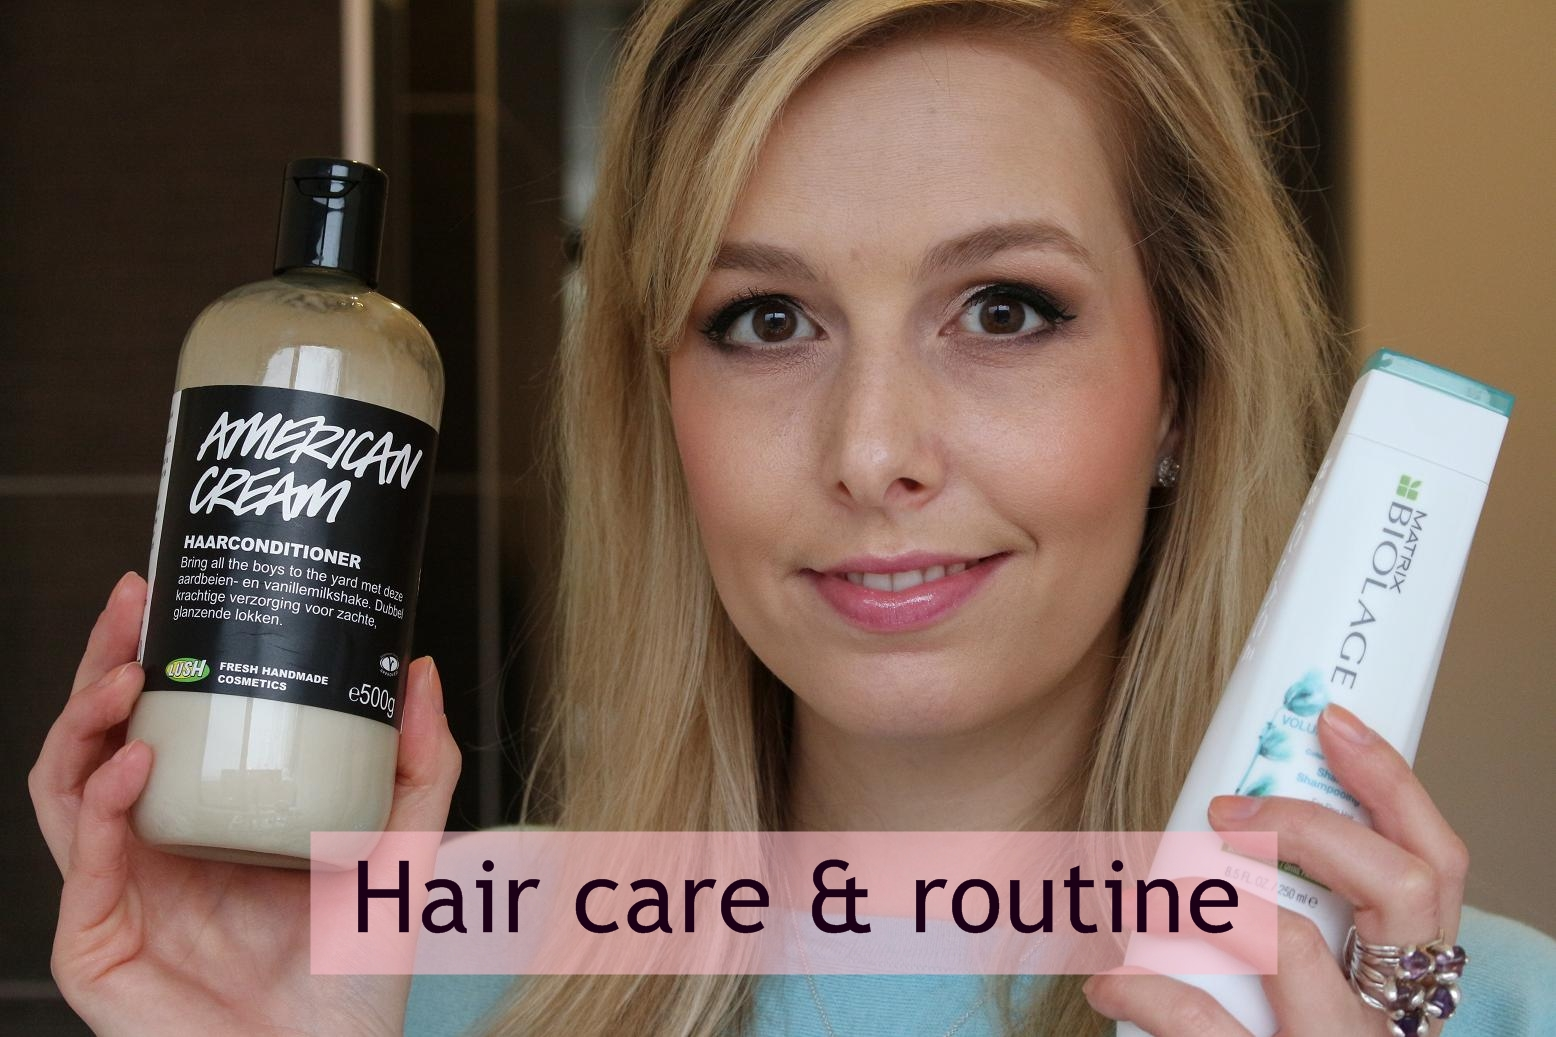 Hair care & routine